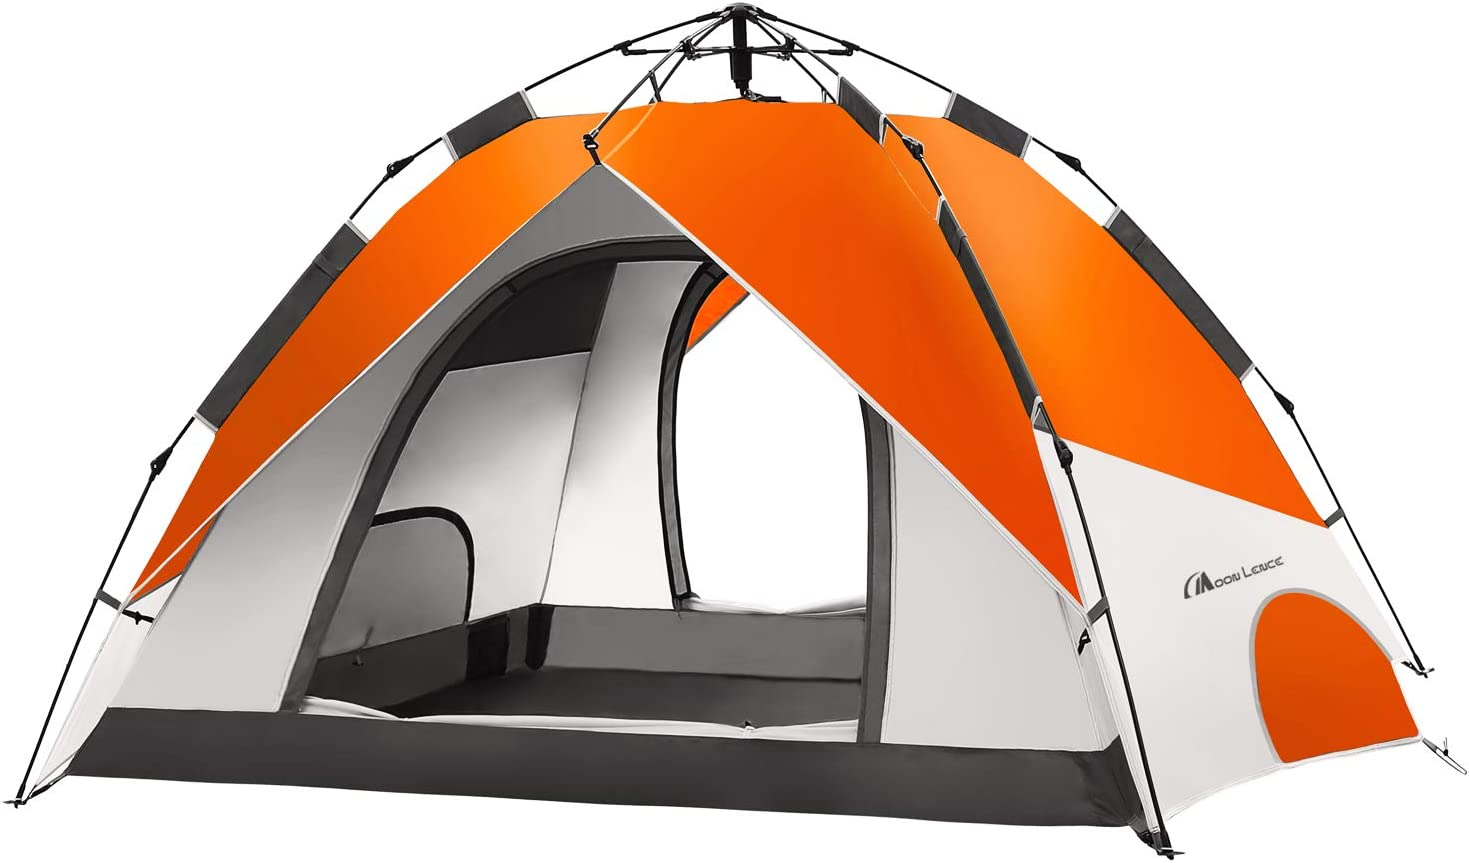 Couples Camping Checklist